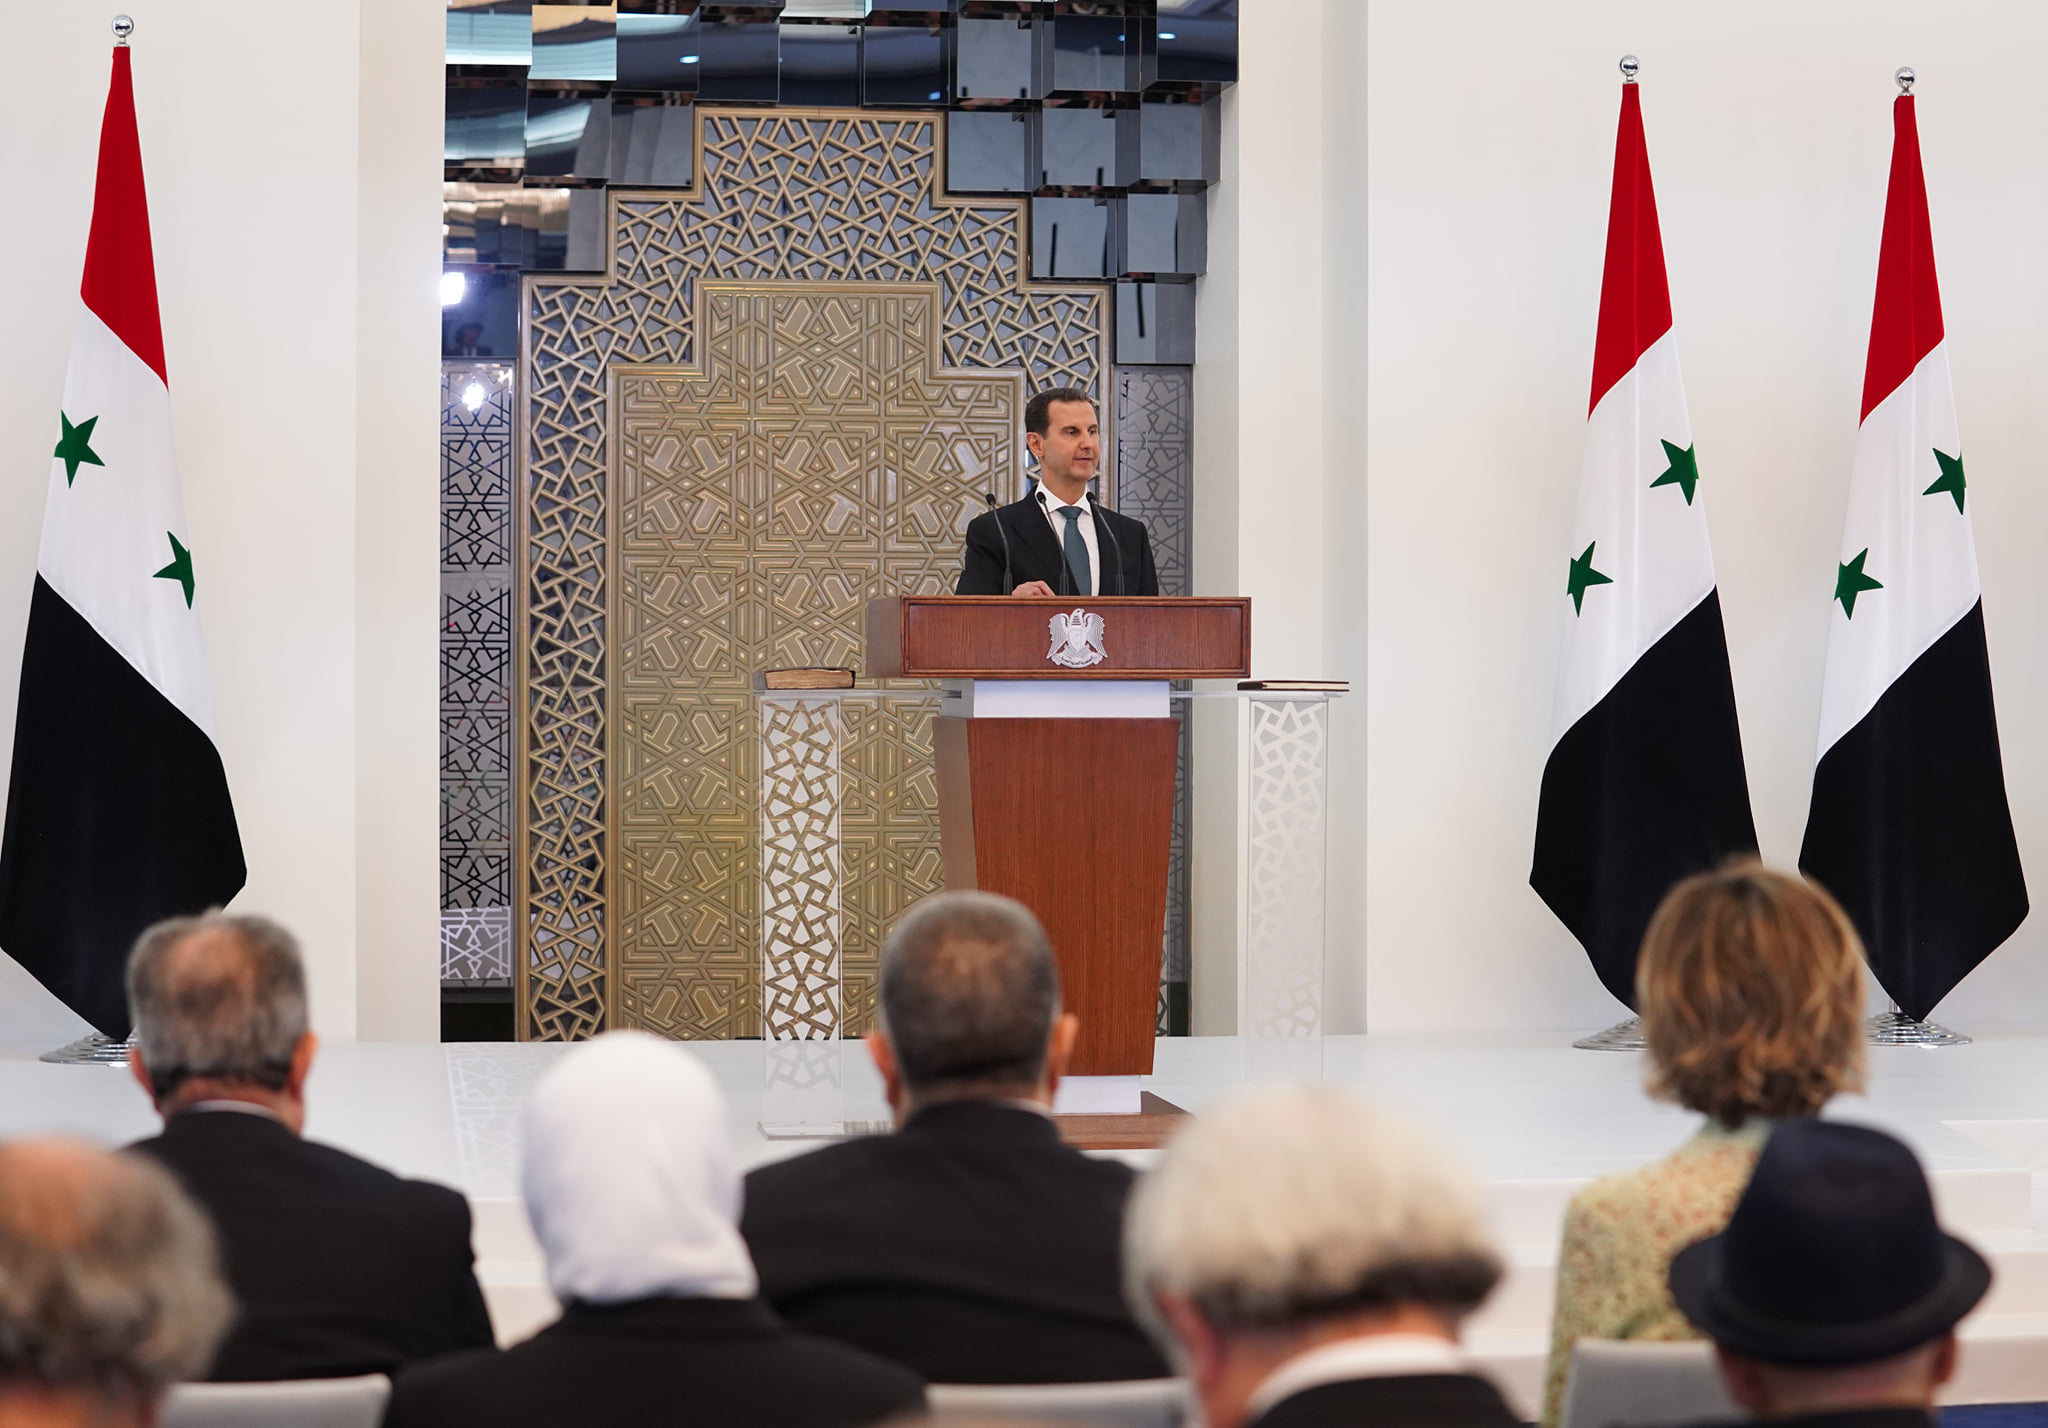 Assad Vows To Liberate Syrian Territory Occupied By US, Turkey As He Starts 4th Presidential Term